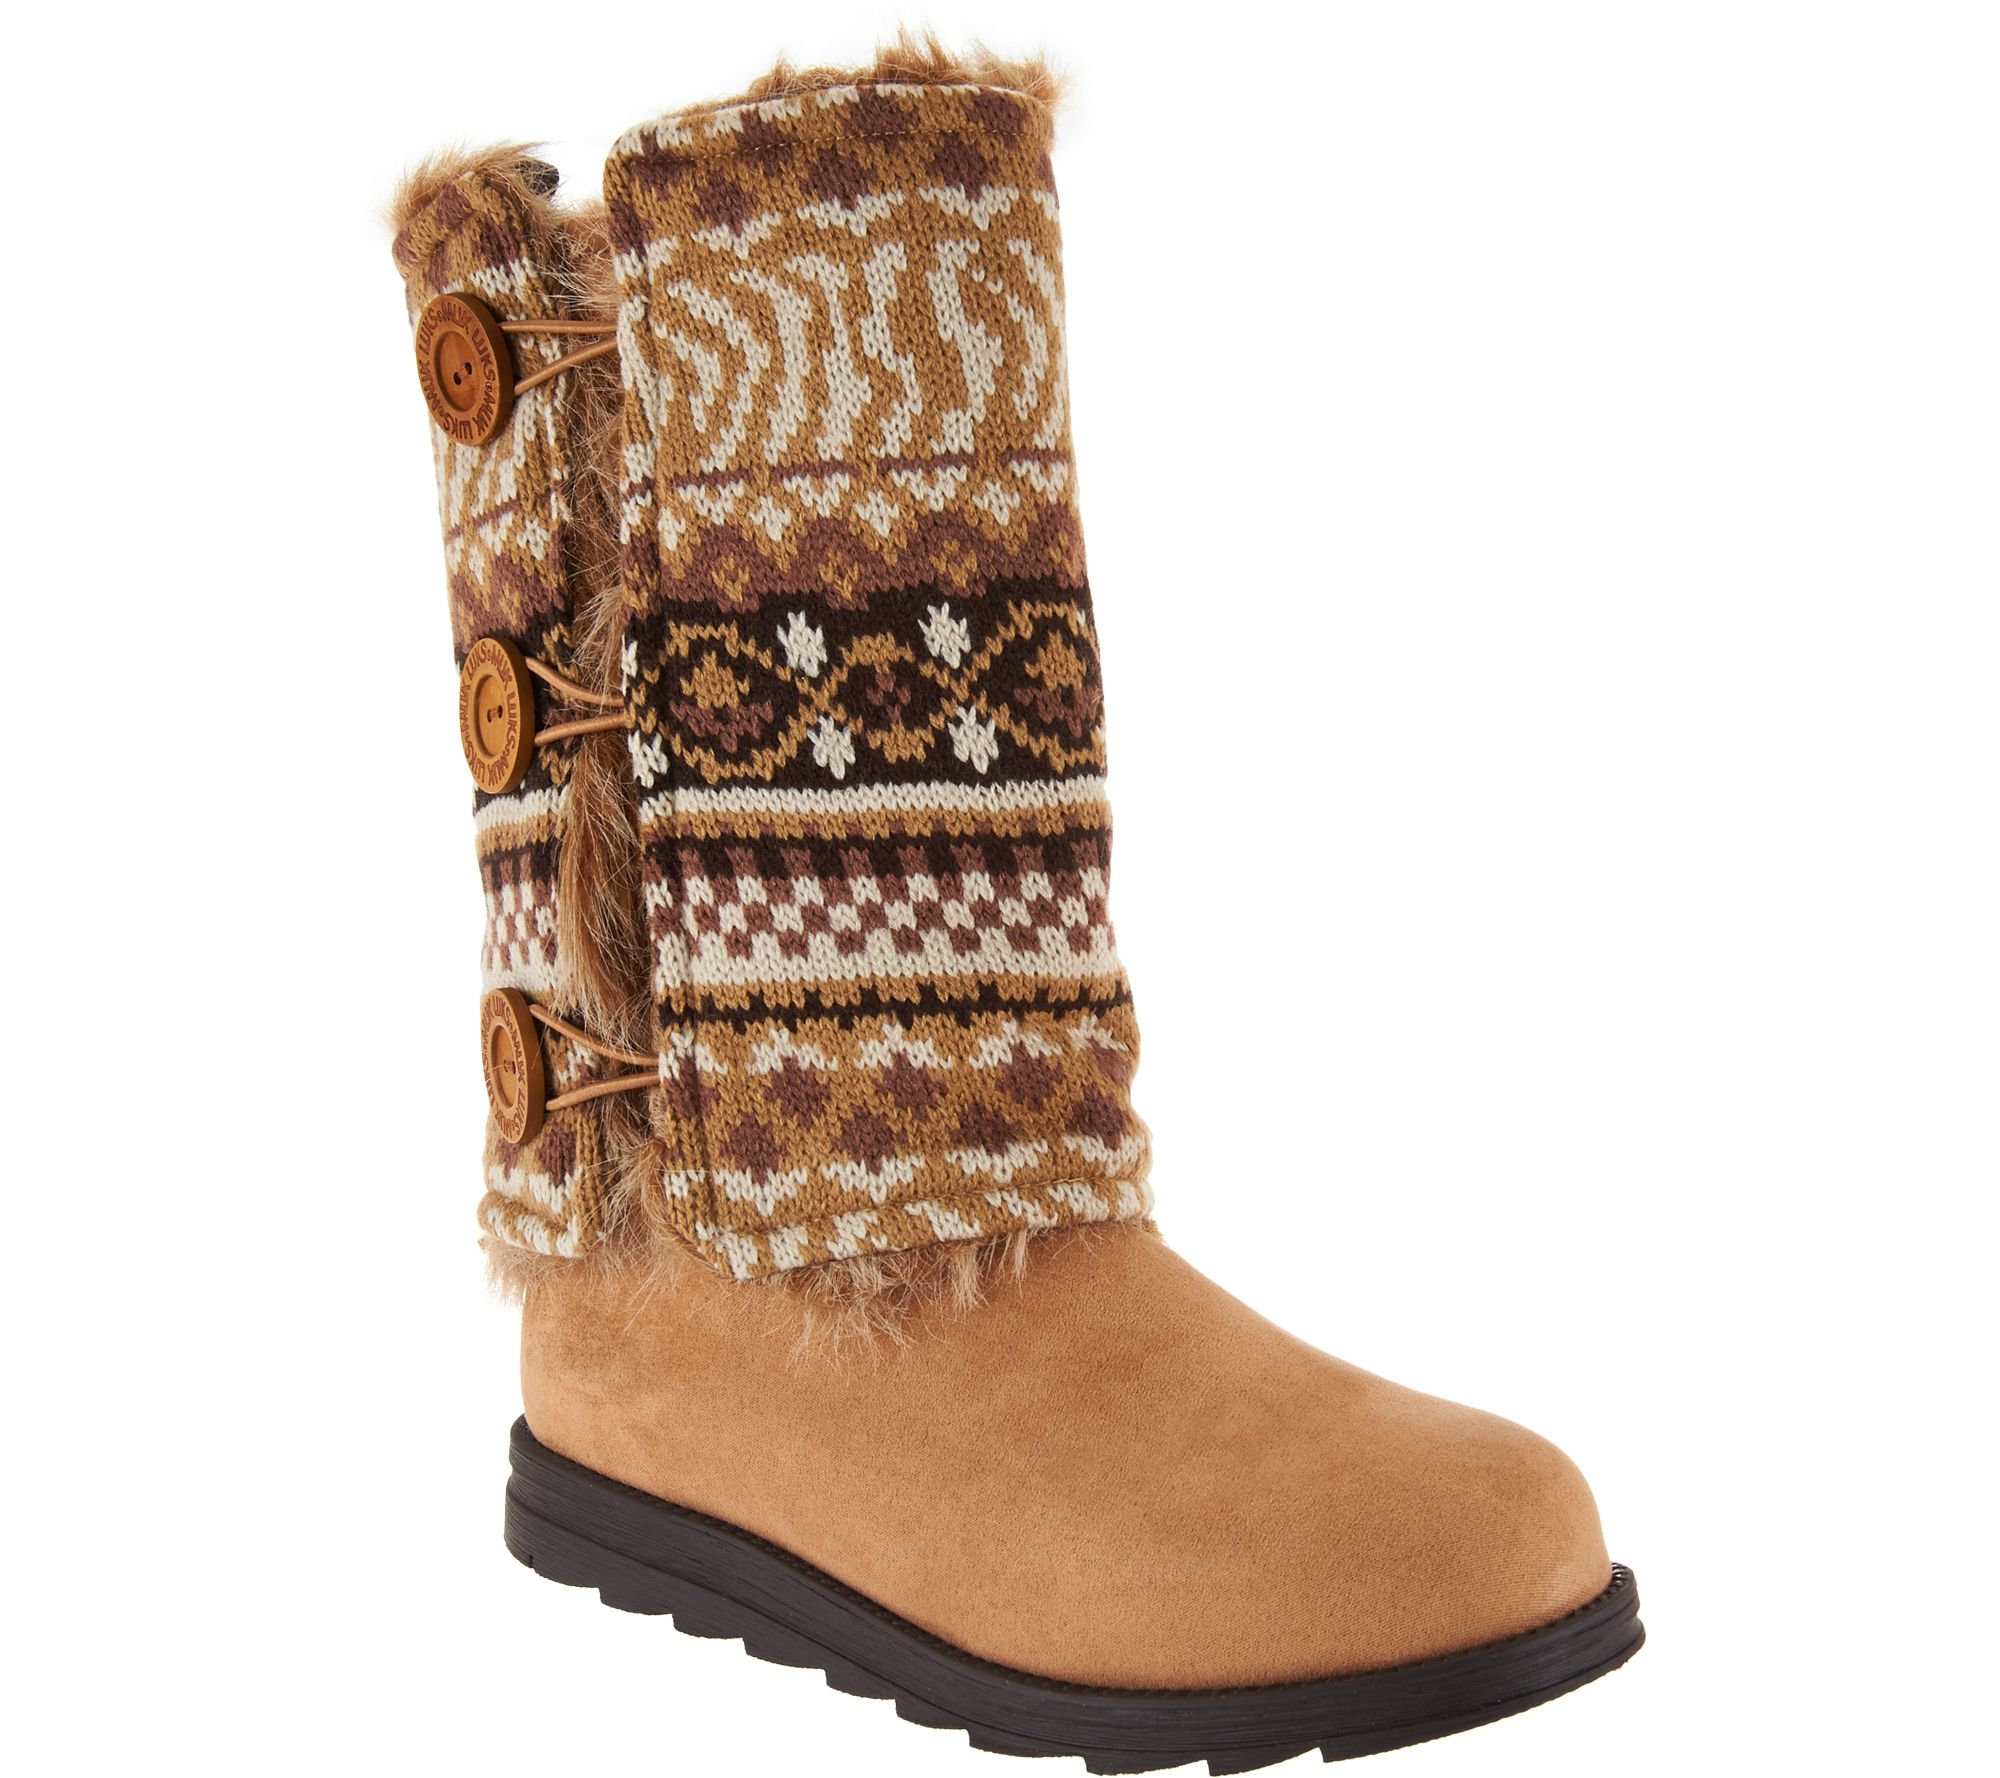 MUK LUKS Andrea 4-in-1 Boot with Reversible Boot Sweater - Page 1 — QVC.com fe336948c